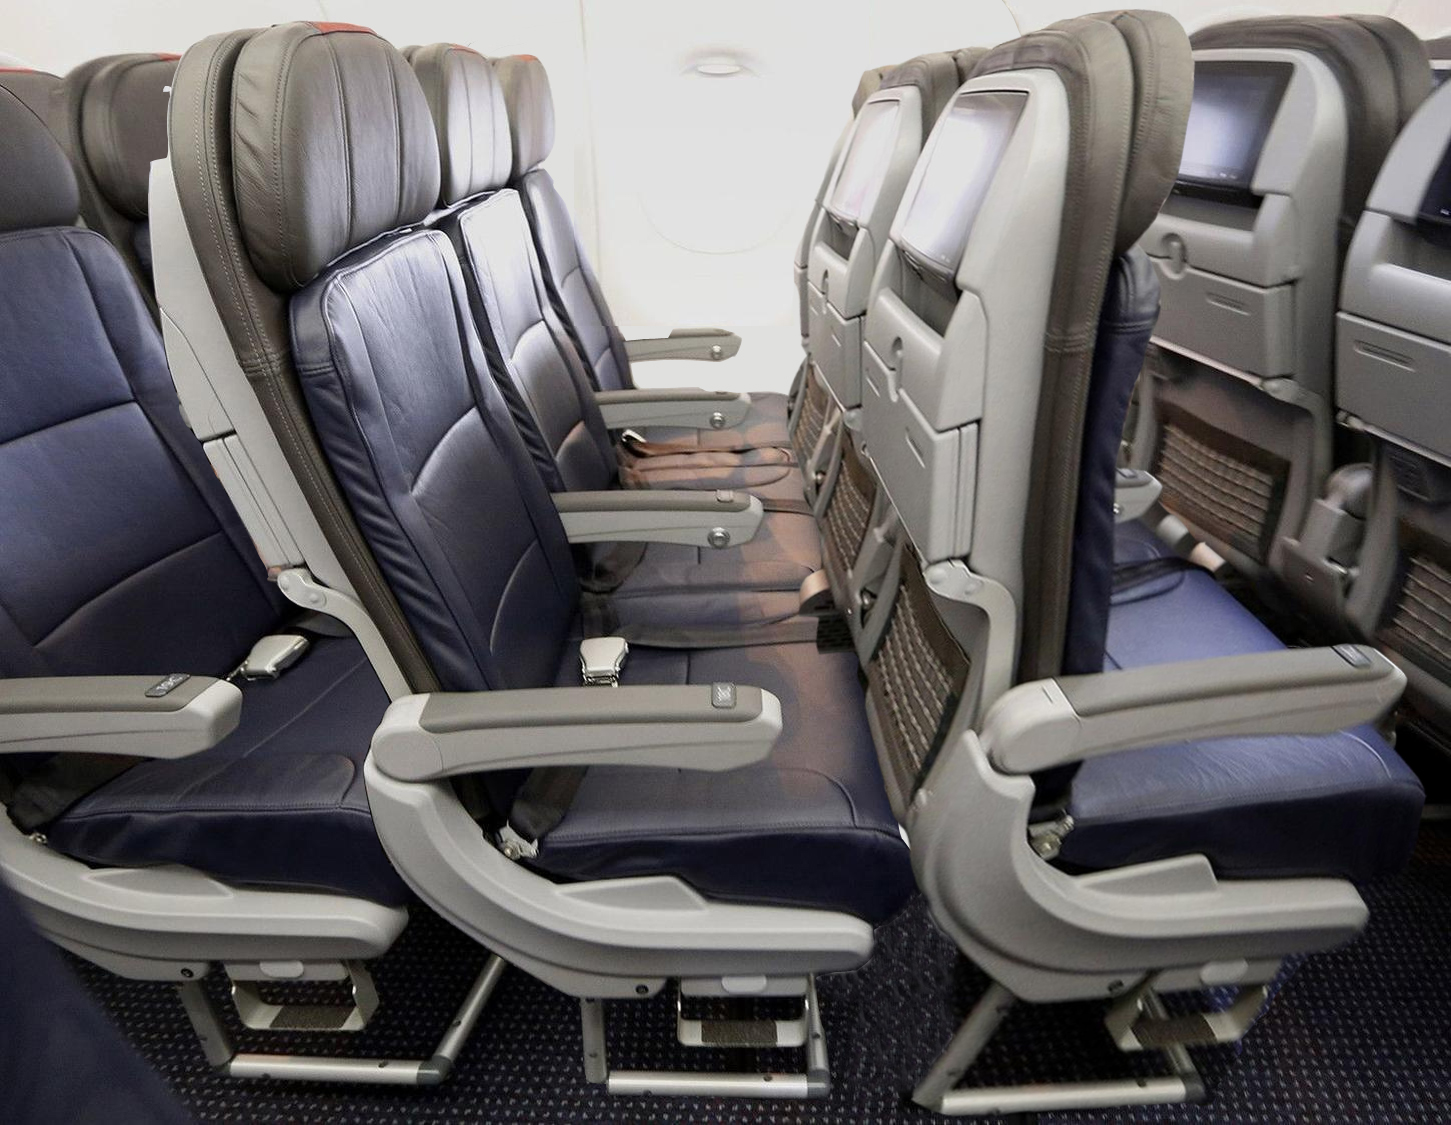 Airline seats leave no room for passengers on their flight at the airport.